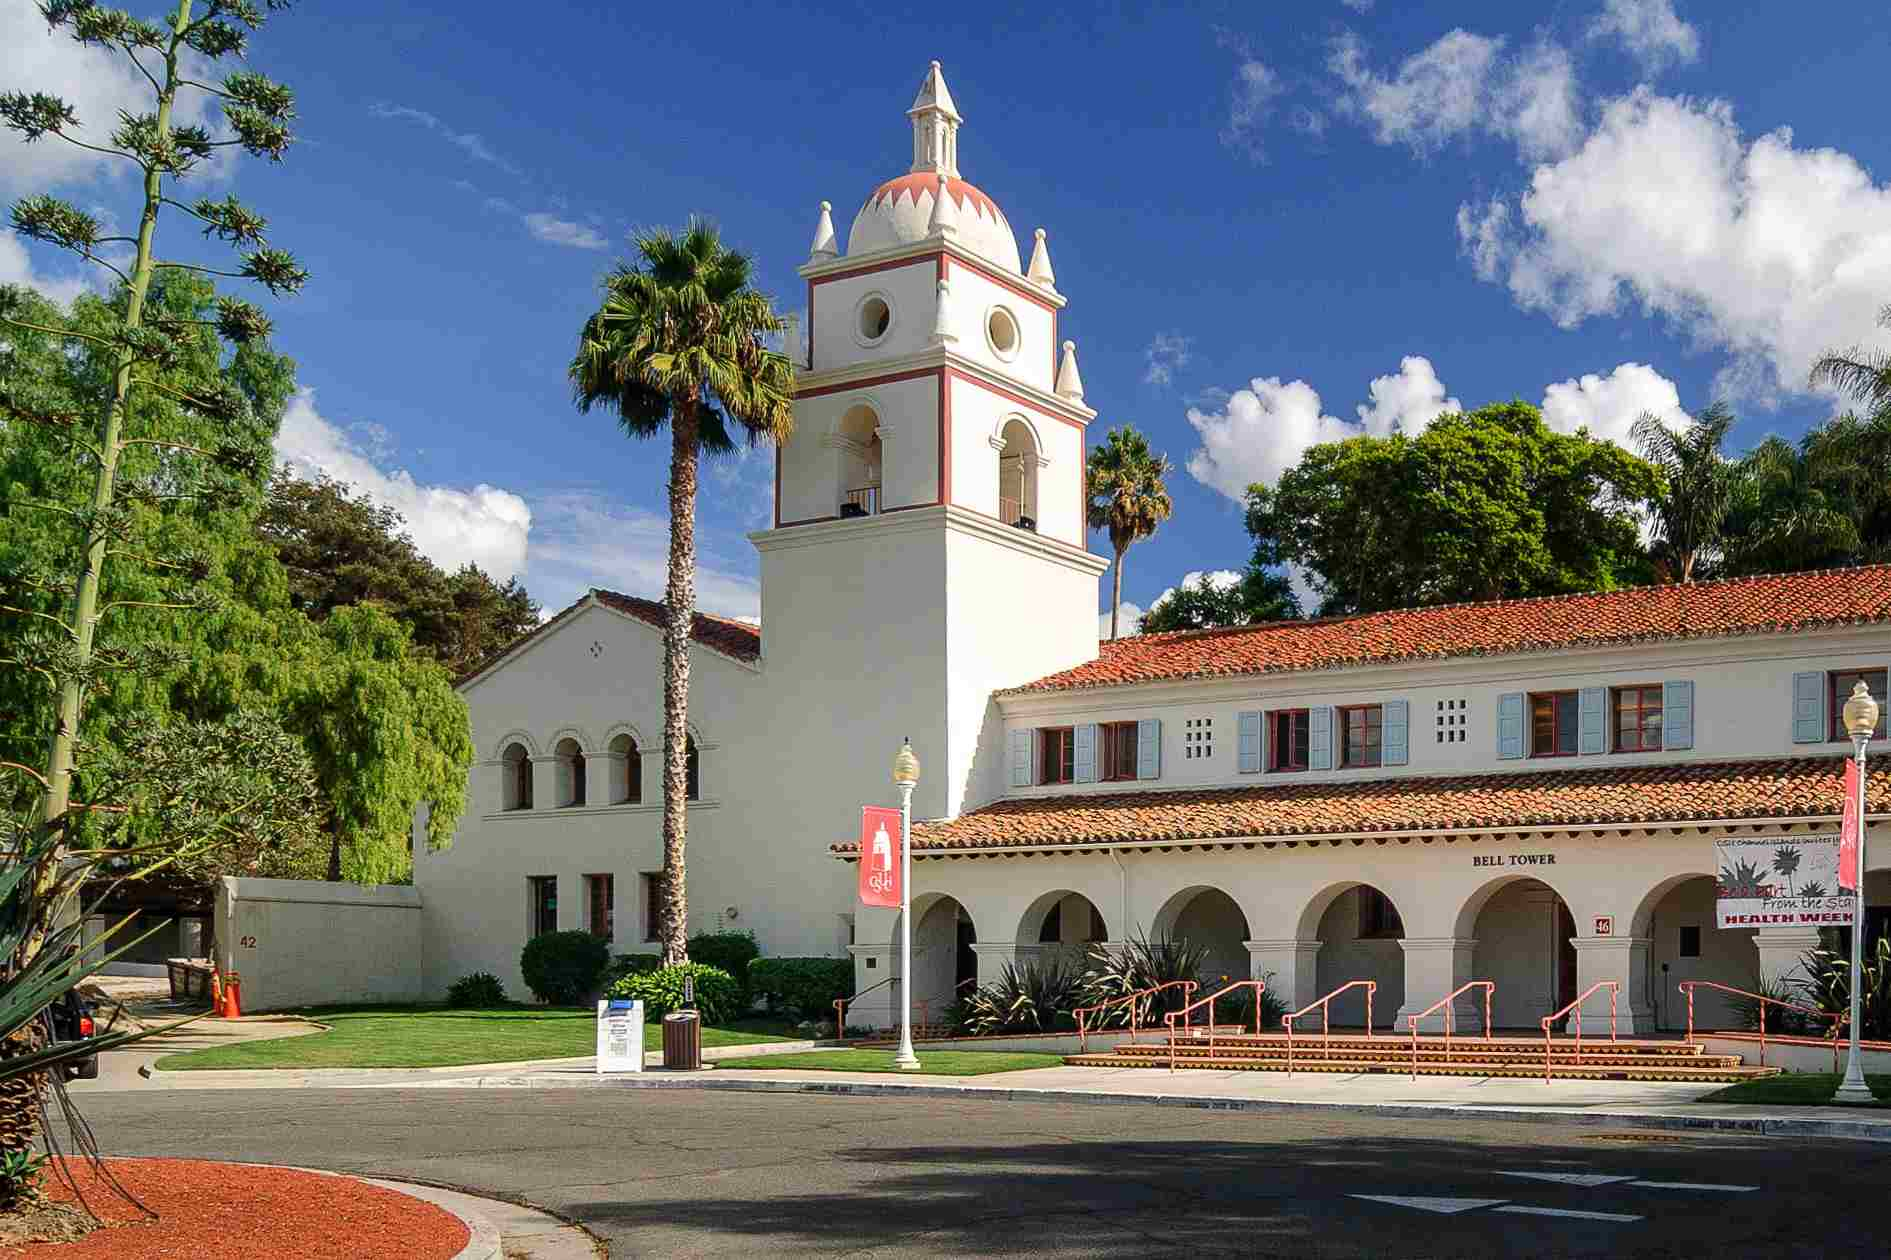 The Bell Tower at CSUCI, Cal State University Channel Islands